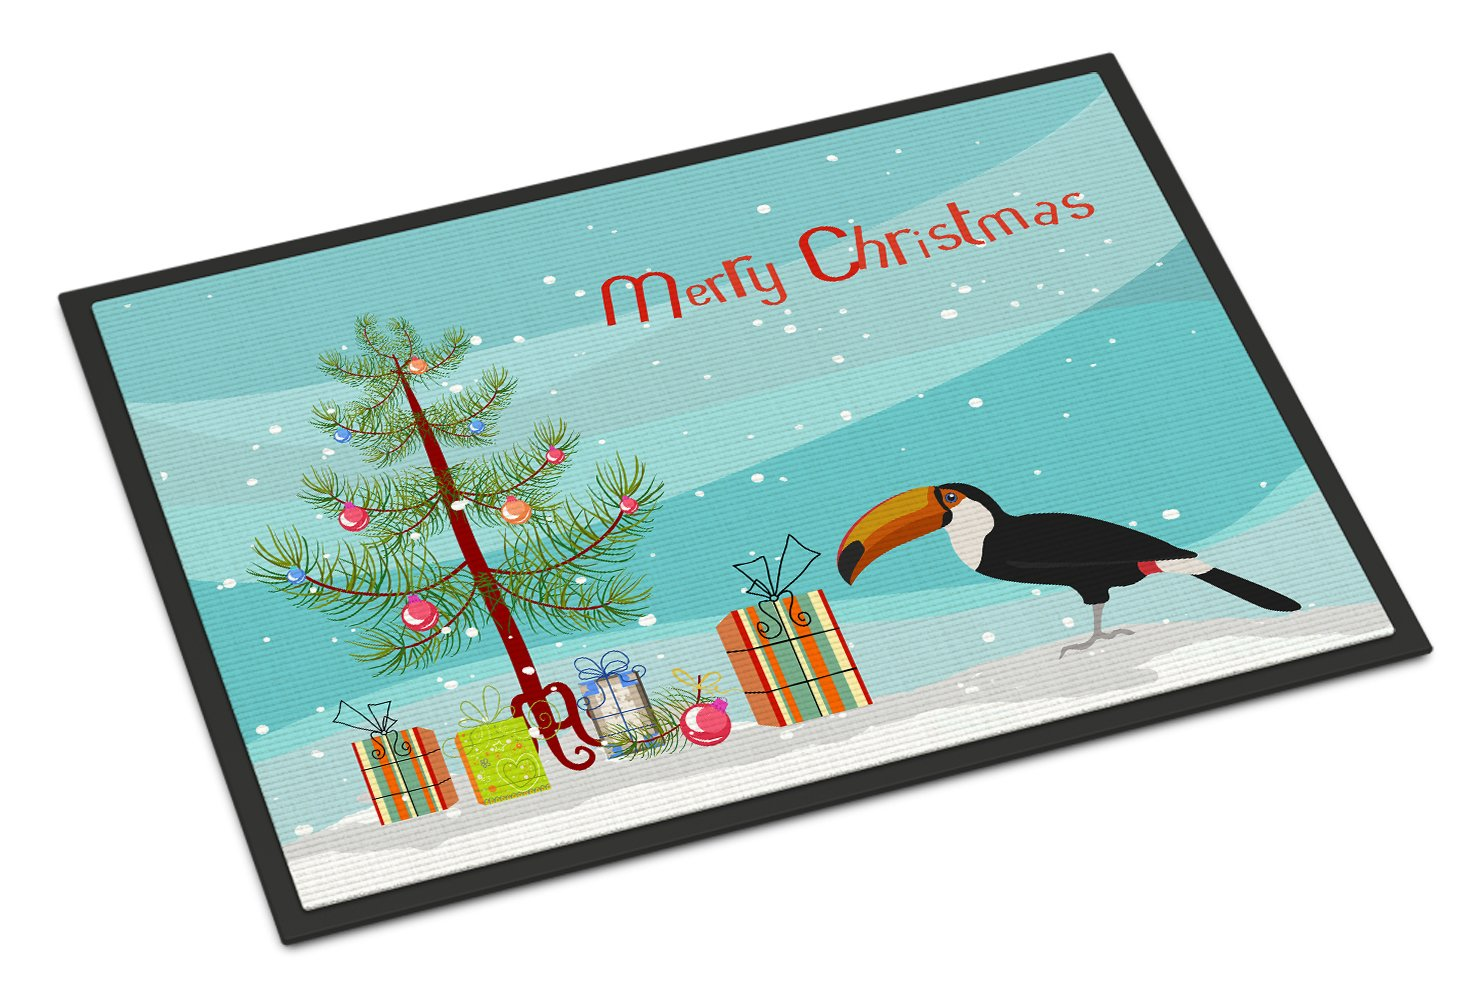 Toucan Merry Christmas Indoor or Outdoor Mat 24x36 CK4494JMAT by Caroline's Treasures